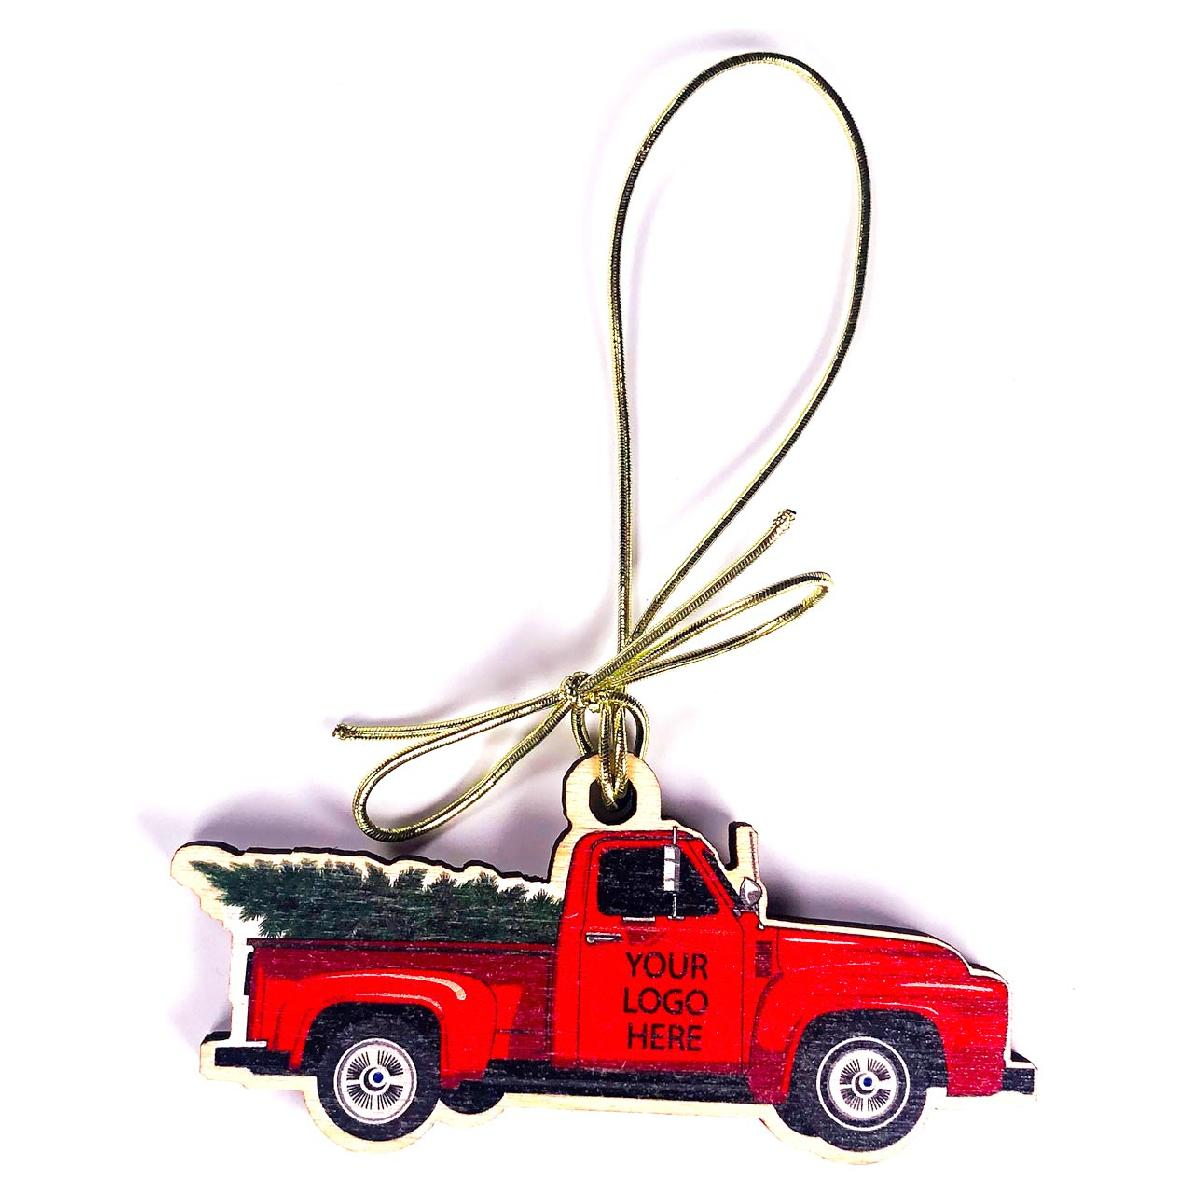 Birch Wood Vintage Red Truck with Christmas Tree Ornament